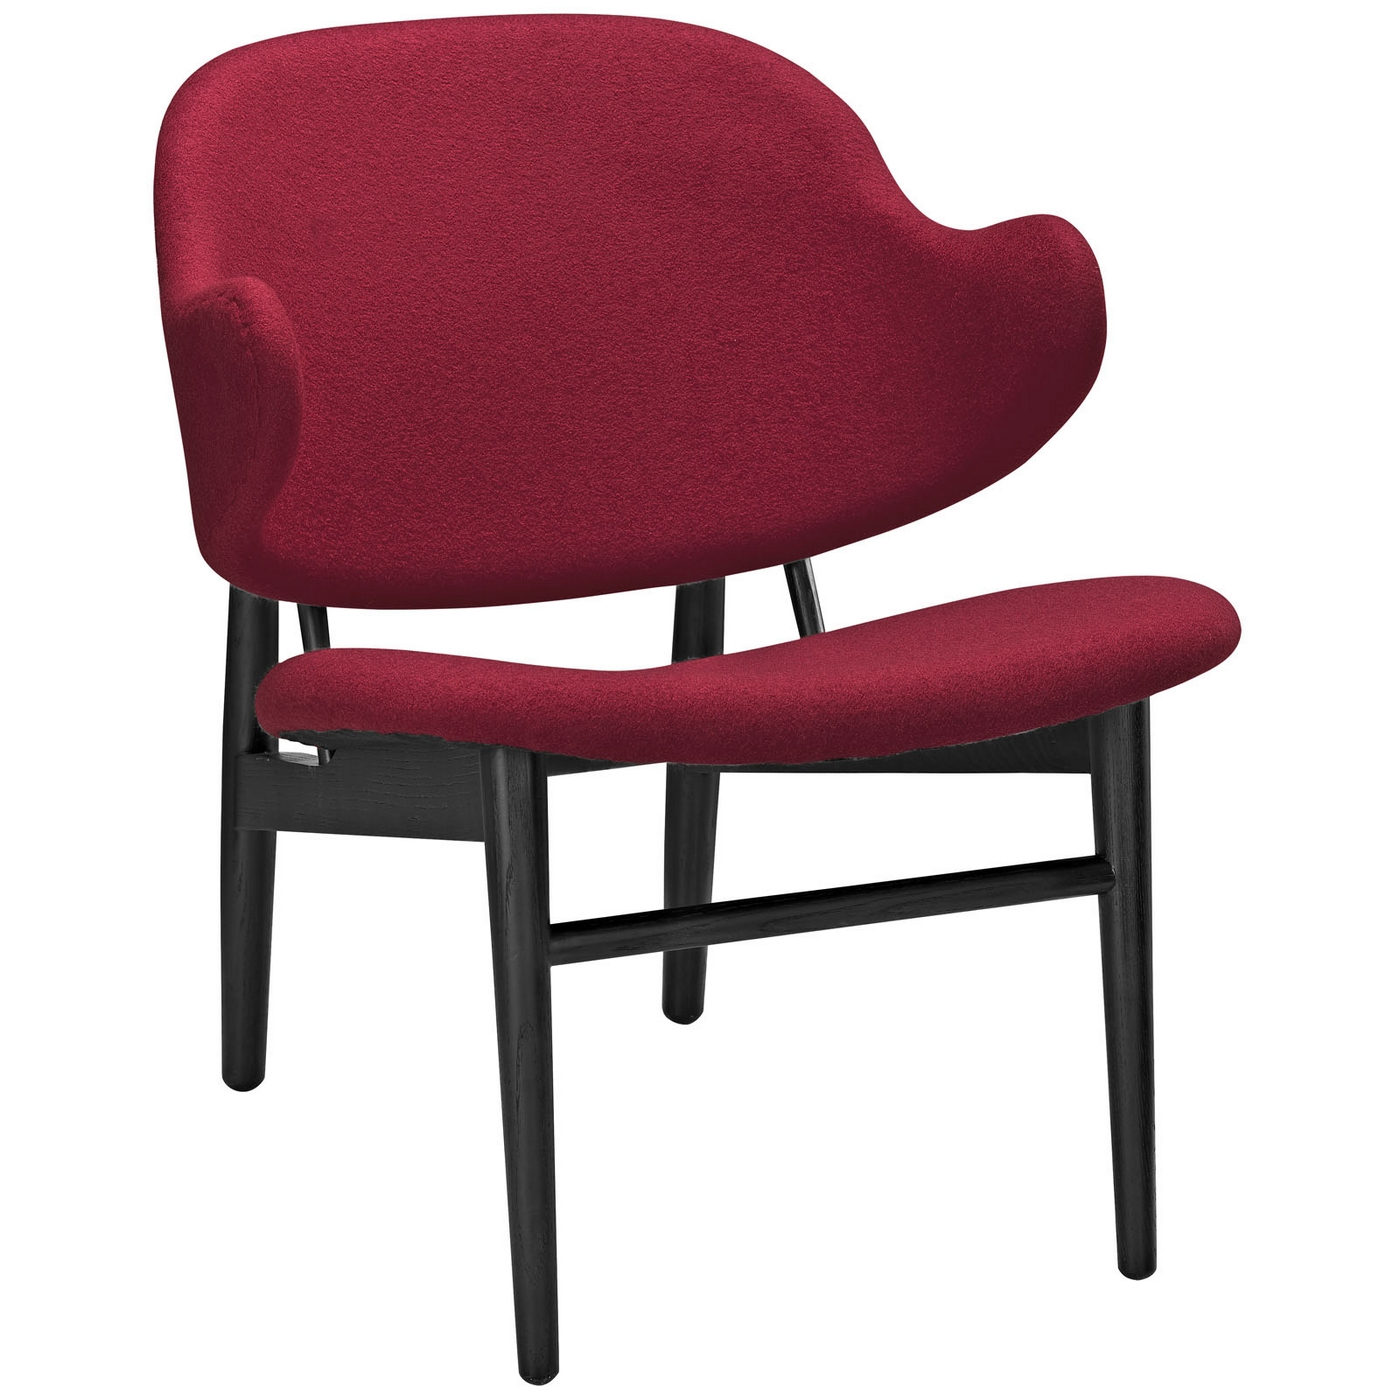 wood lounge chairs space saving suffuse natural chair w upholstered padded